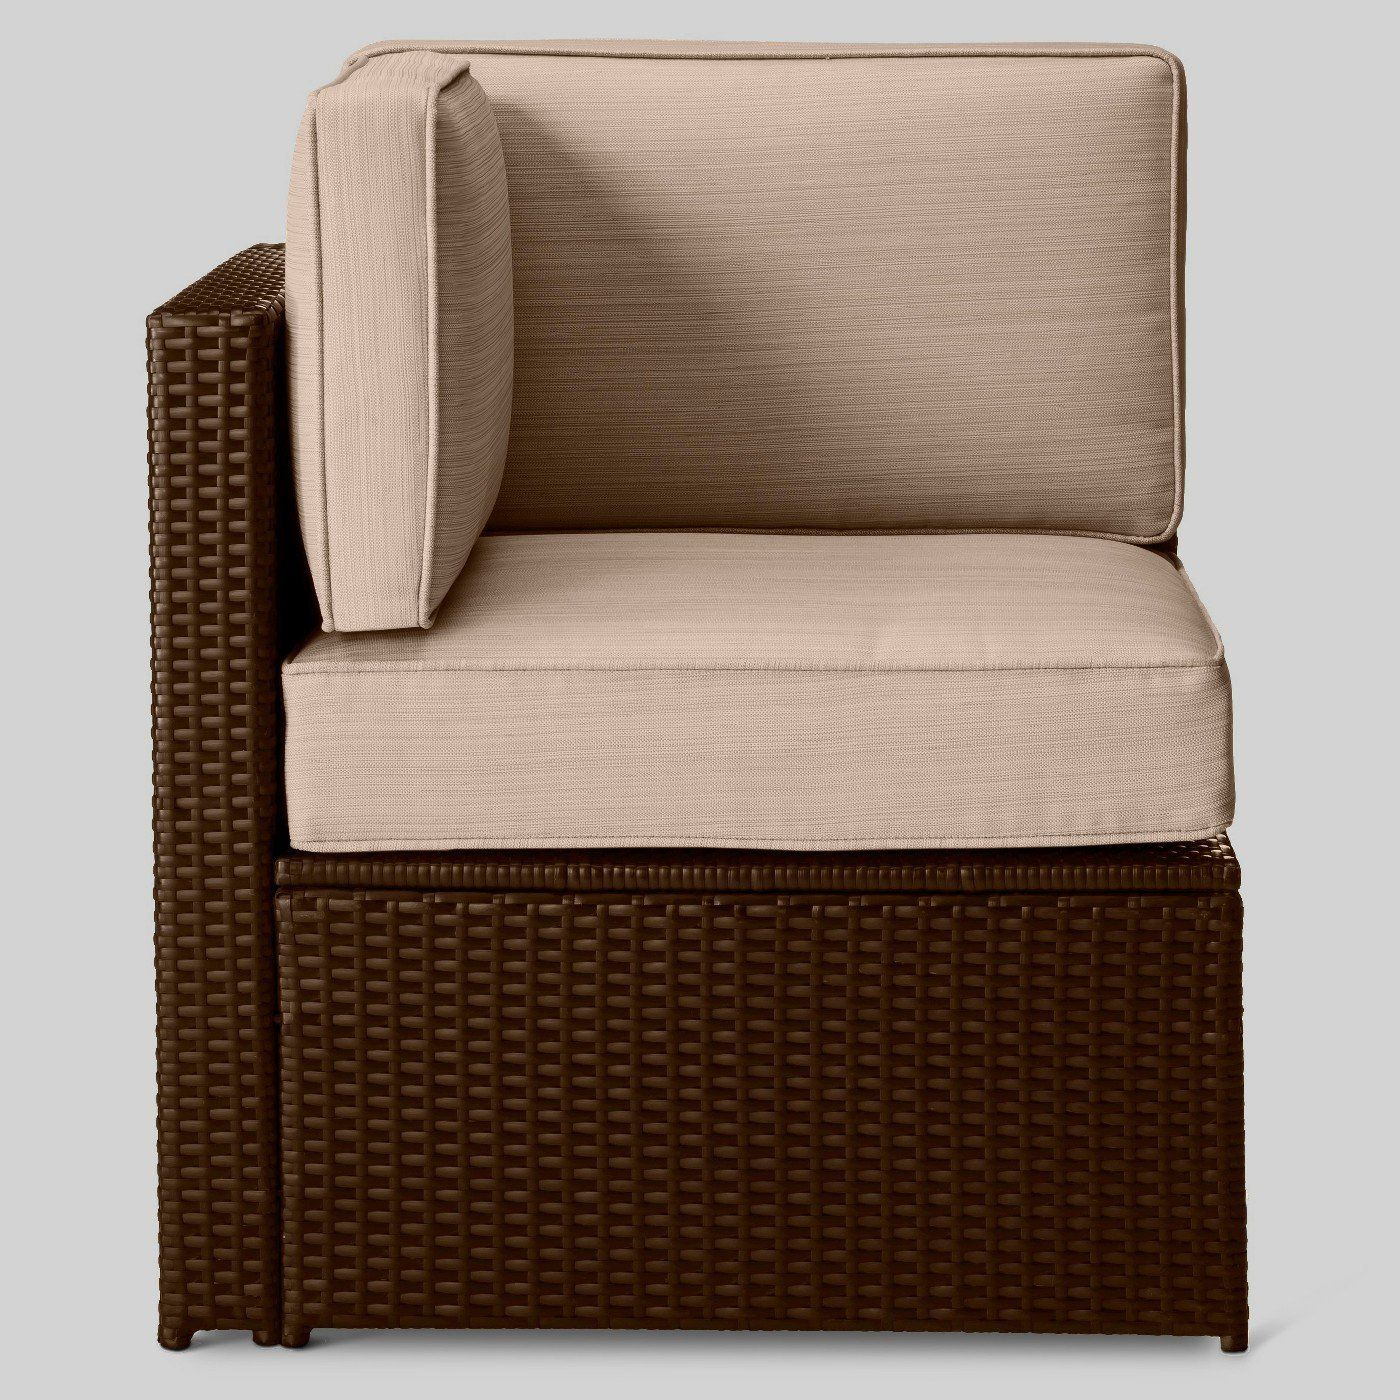 Wicker Sectional Corner Chair. Target. Look For Individual Pieces Of  Furniture When It Comes To Your Small Outdoor Space ...